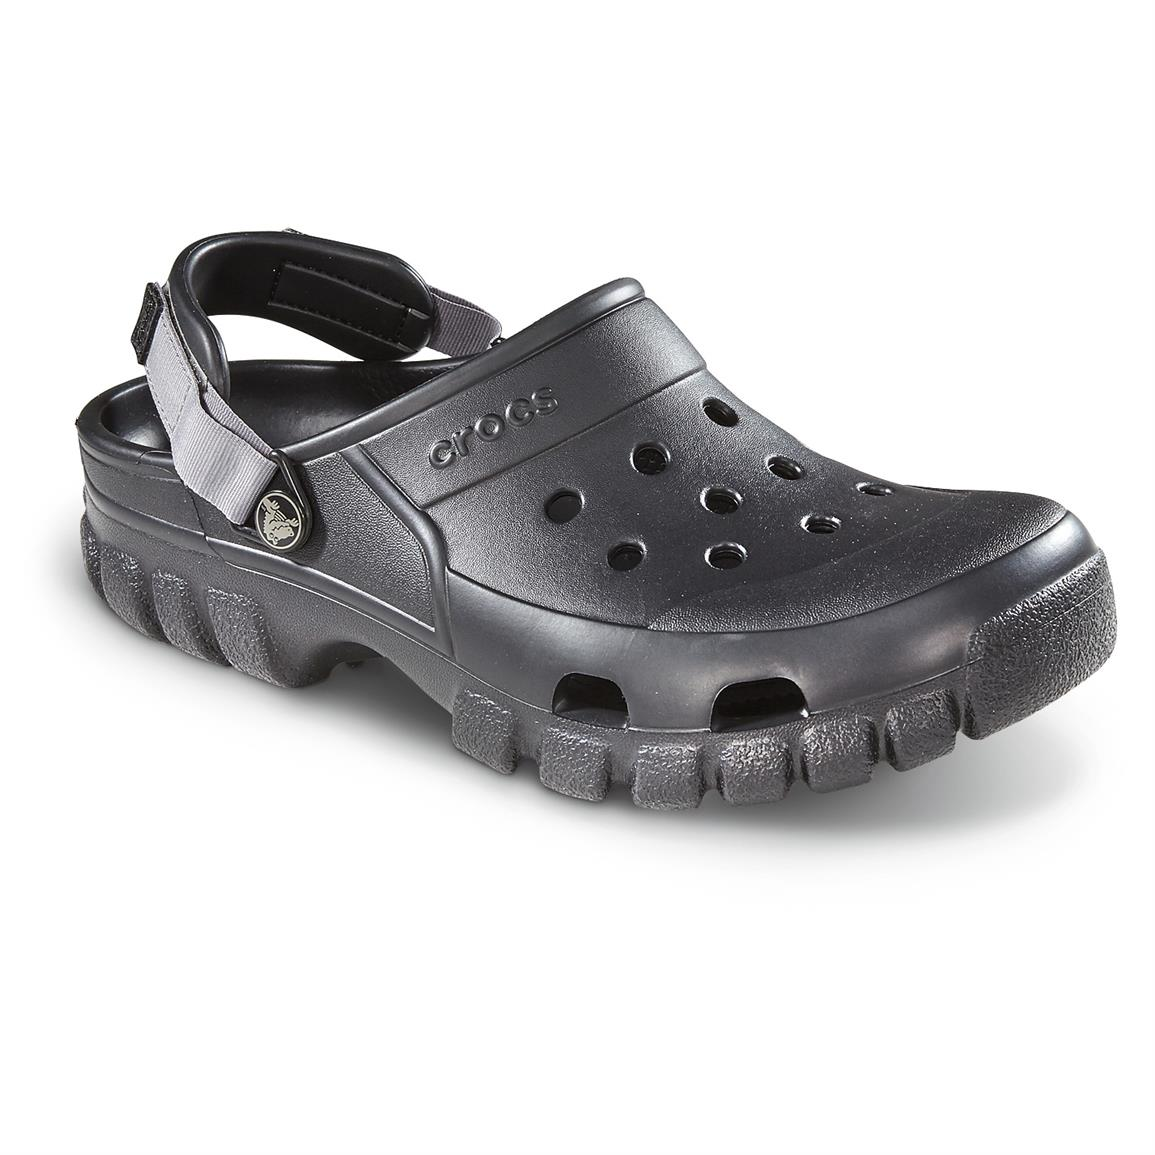 Crocs Men's Offroad Sport Clogs, Black / Graphite